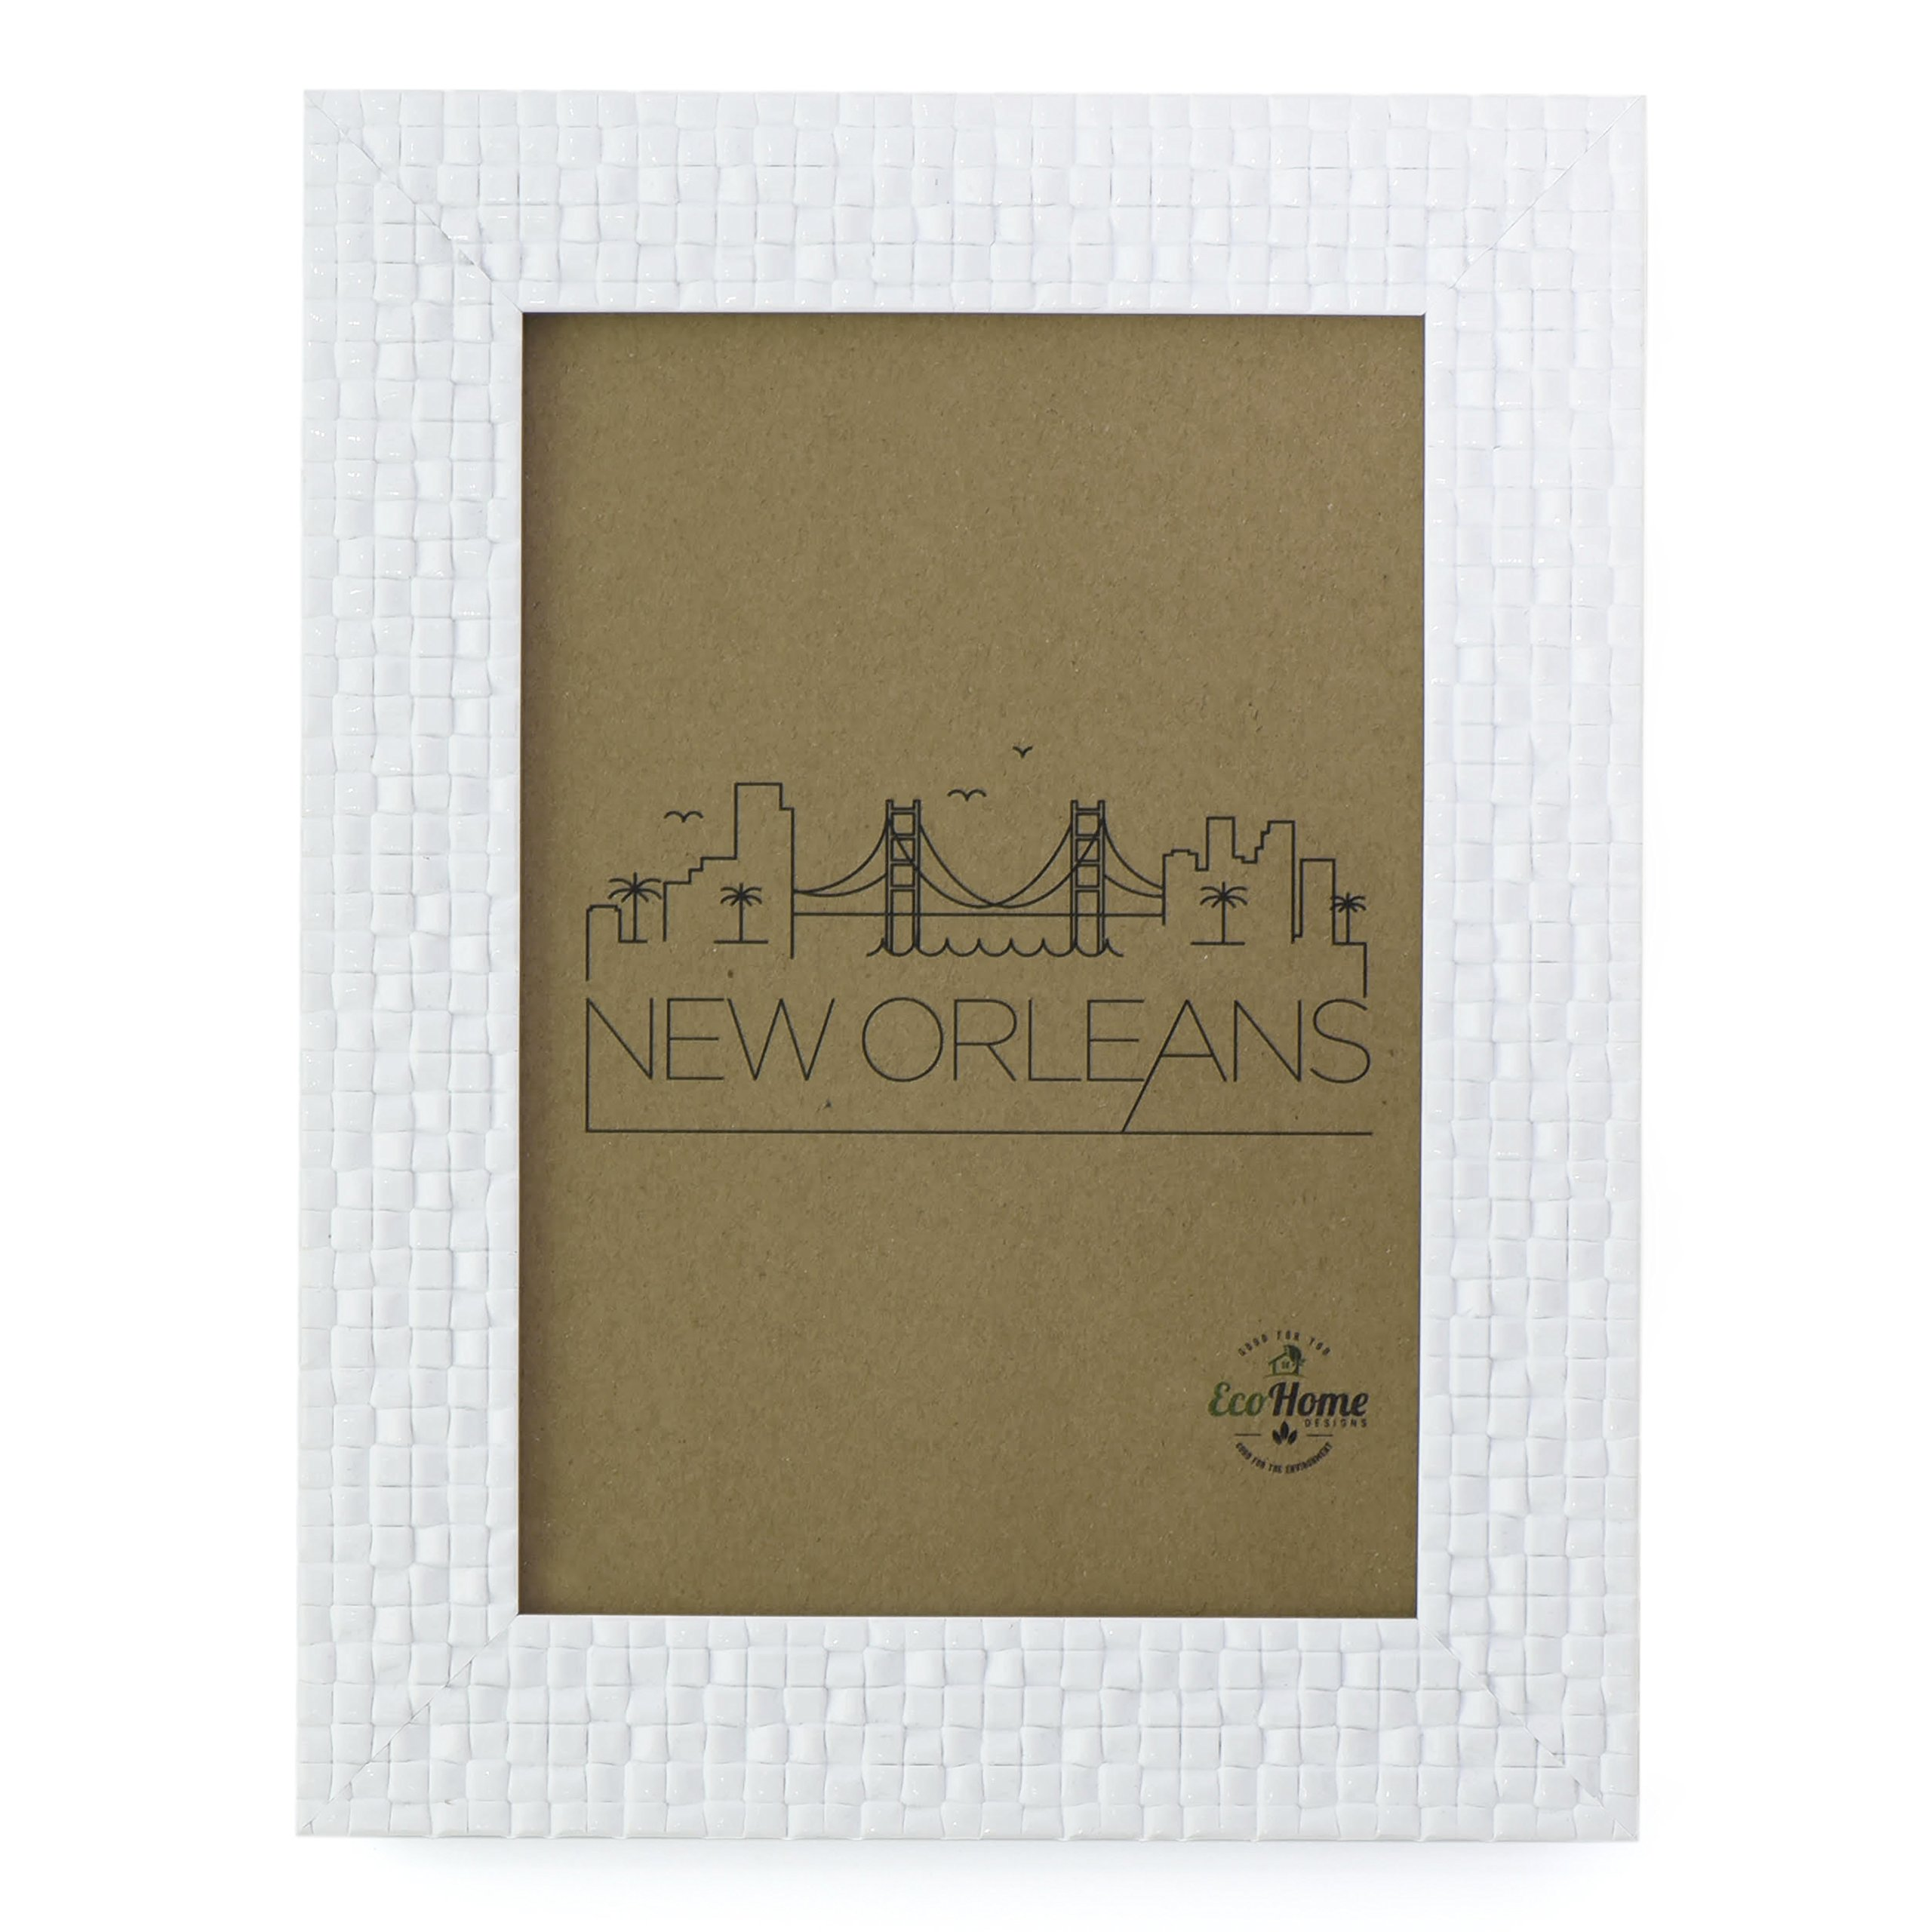 8x10 Picture Frame White Tile - Wall Mount Desktop Display, Frames by EcoHome by Eco-home